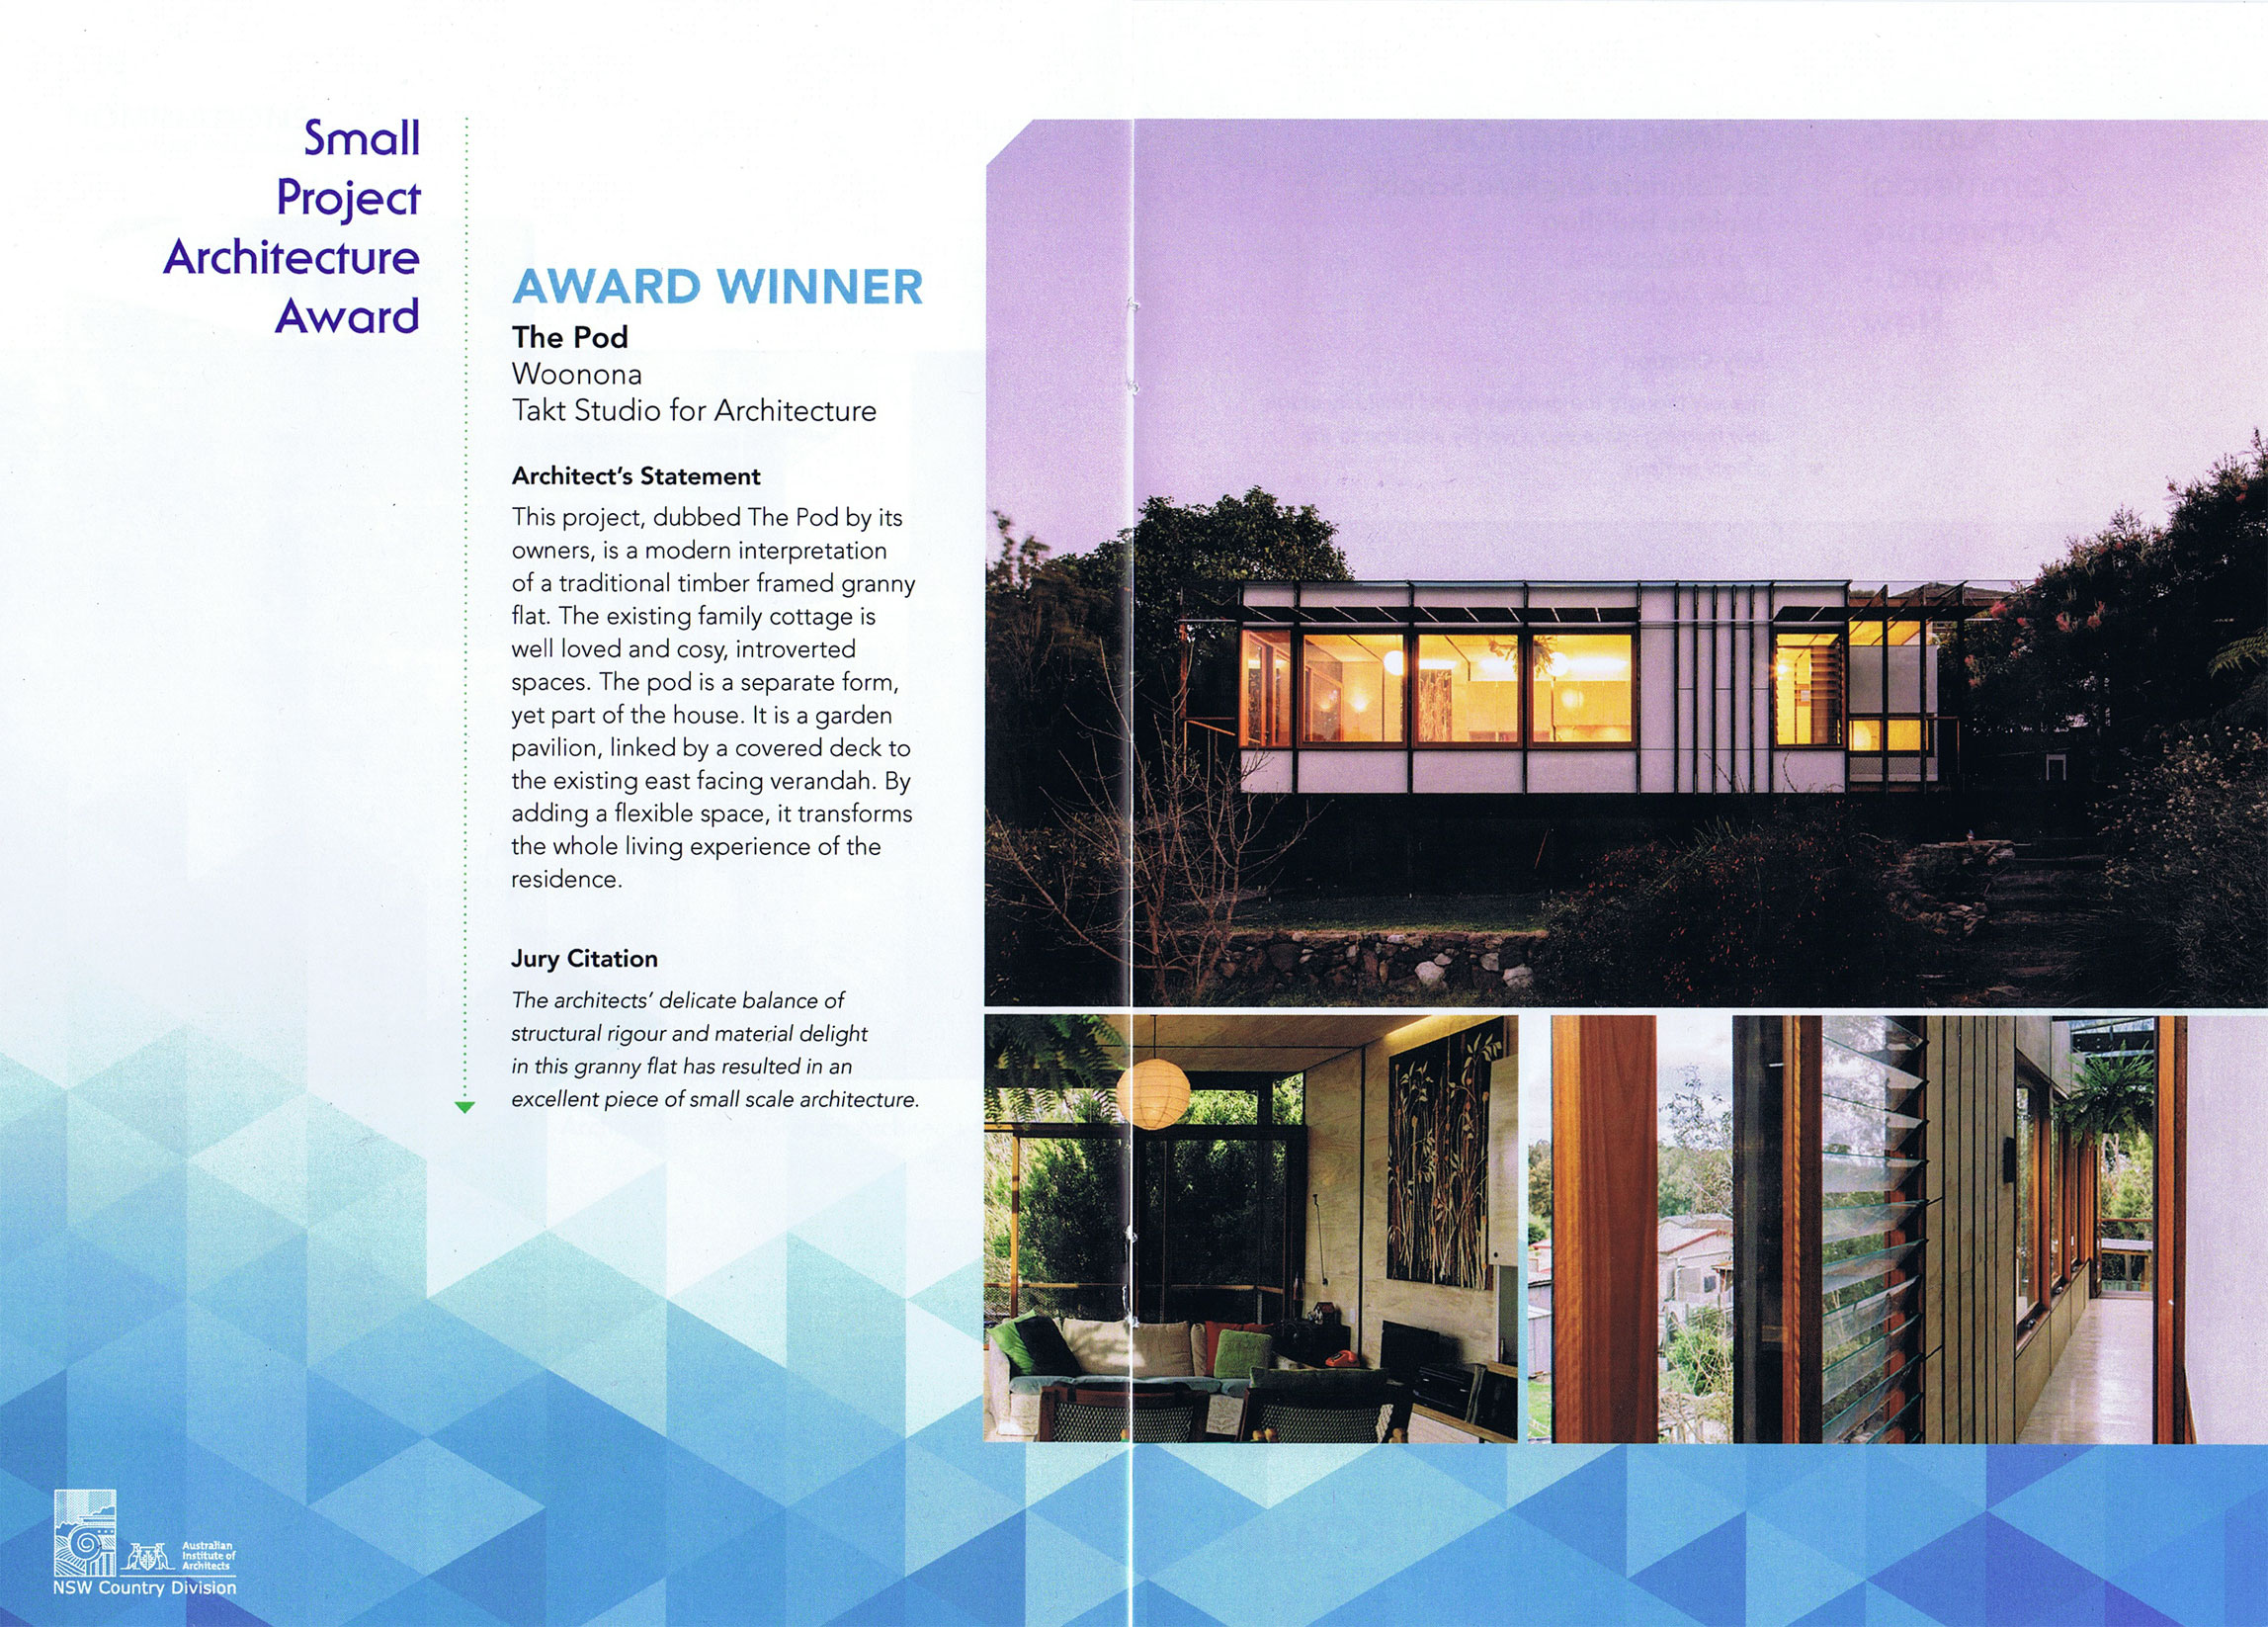 Small Project Award - AIA Country Division 2013 - The Pod - Woonona